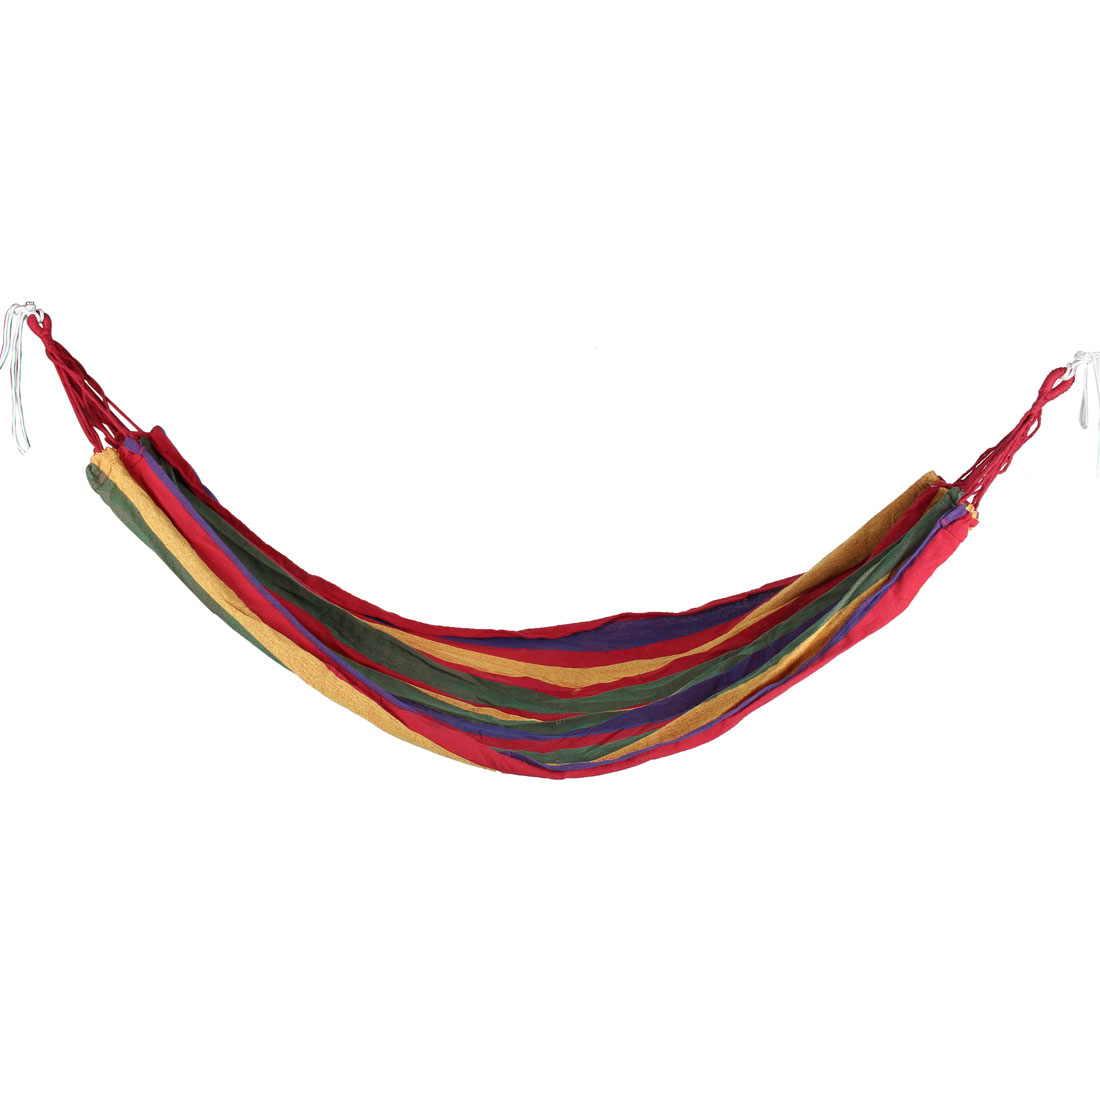 Outdoor Garden Camping Travel Colorfull Strips Canvas Hammock Sleeping Bed 280cmx82cm w Nylon Band